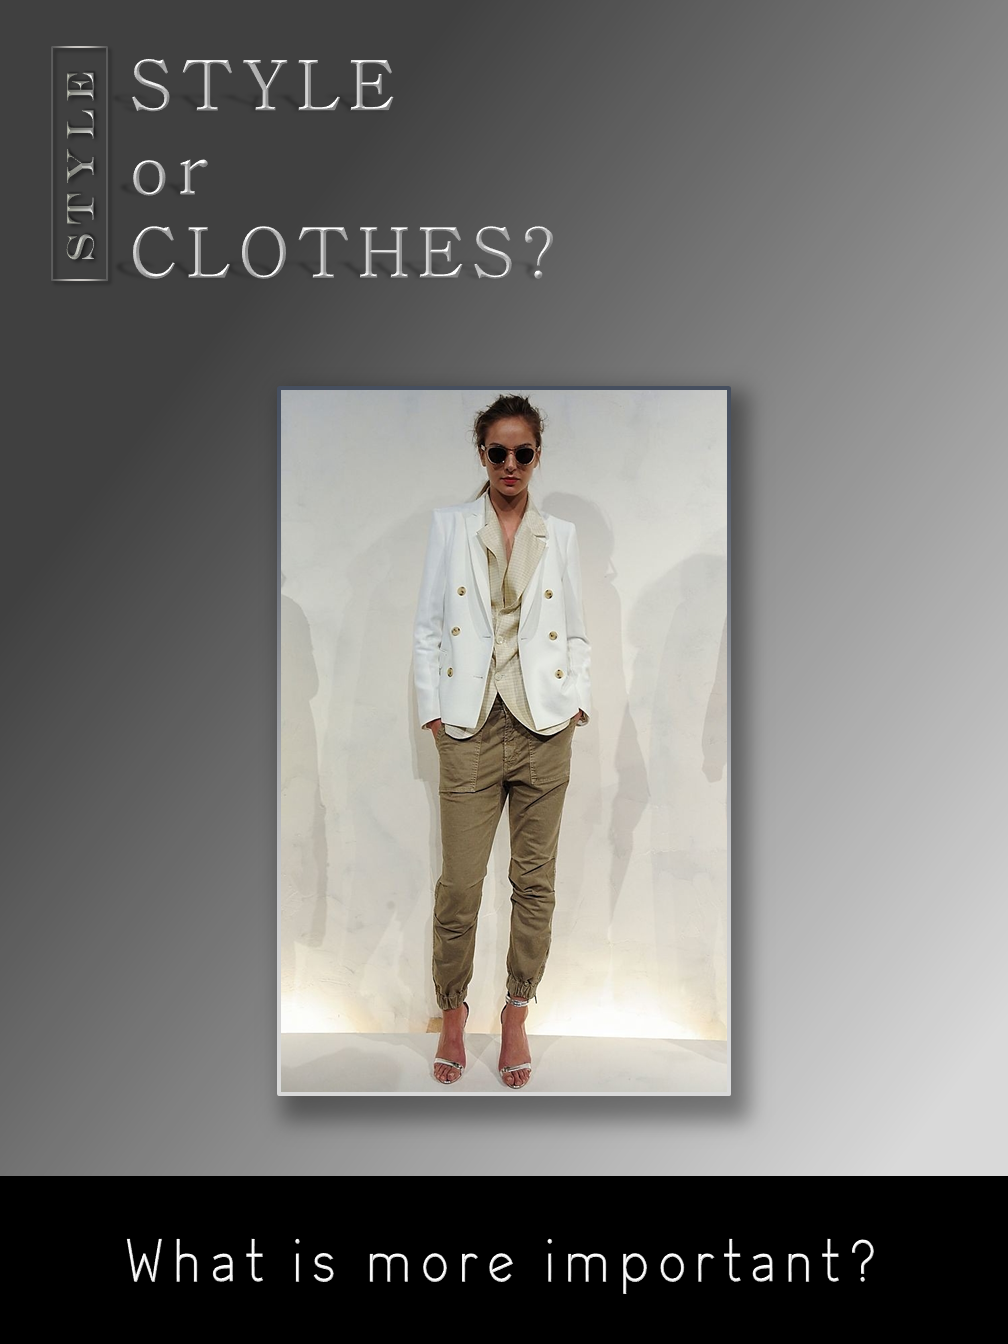 Style or Clothes